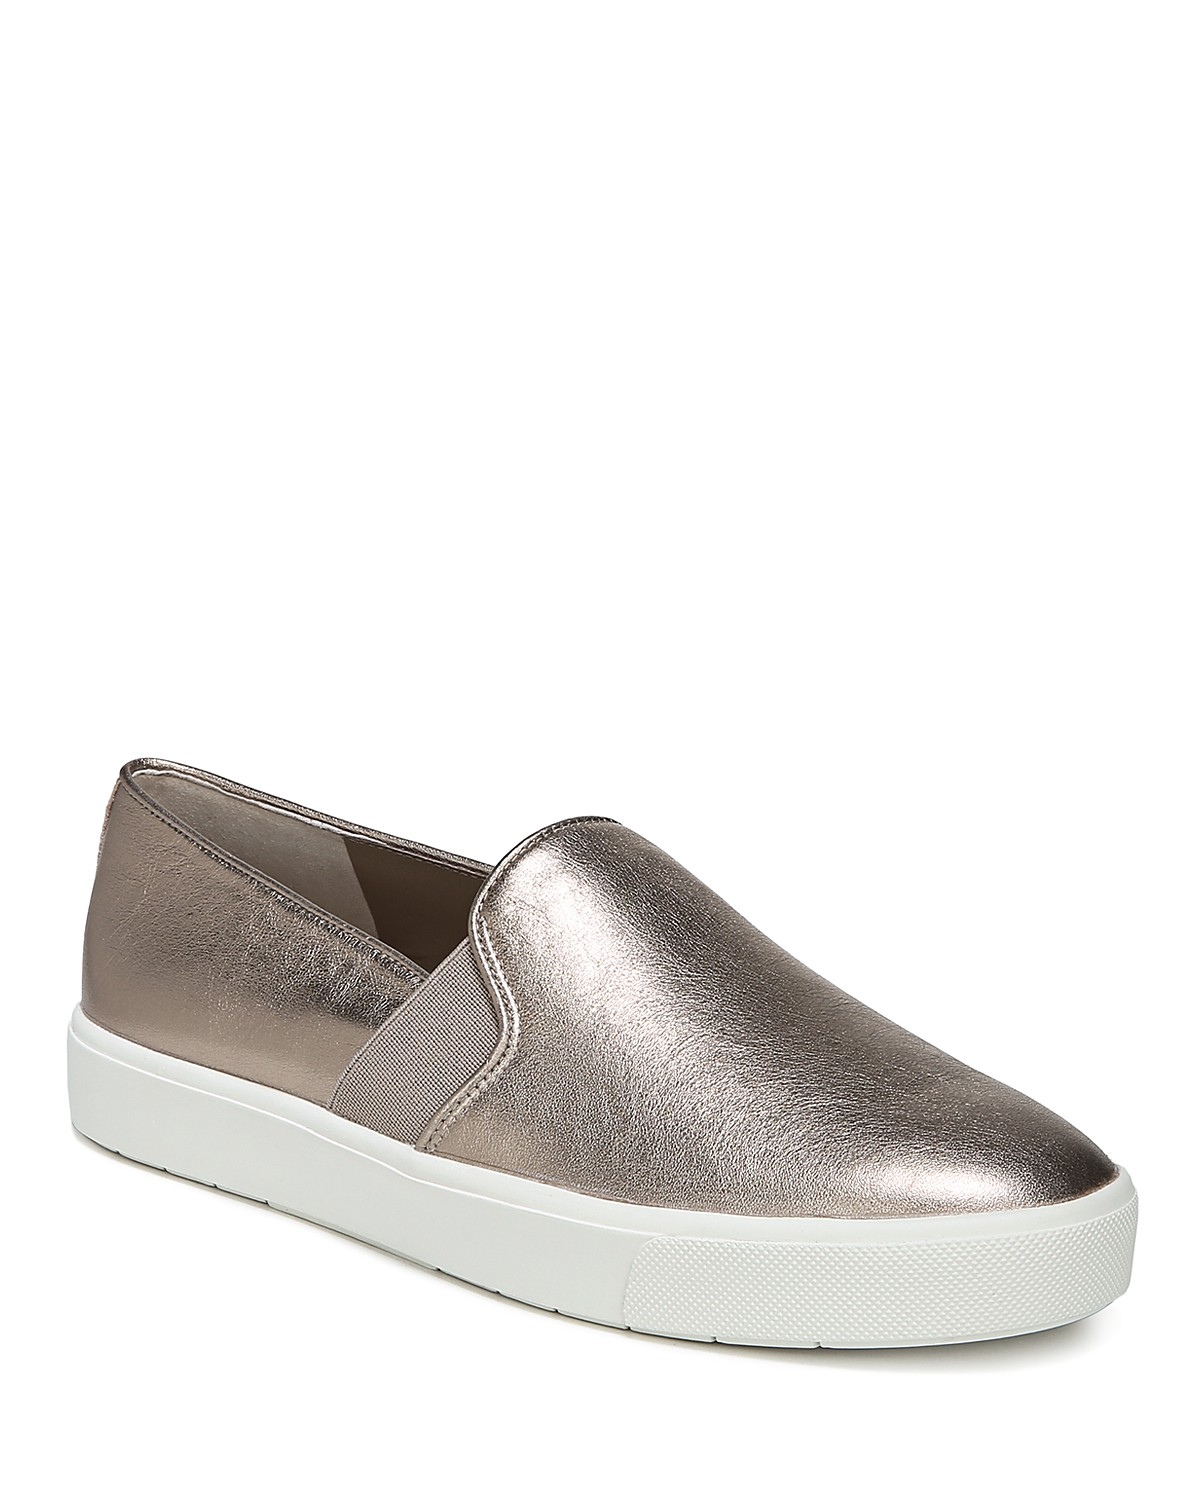 Vince Women's Blair Leather Slip-On Sneakers - 100% Exclusive 1ecKAbWGU